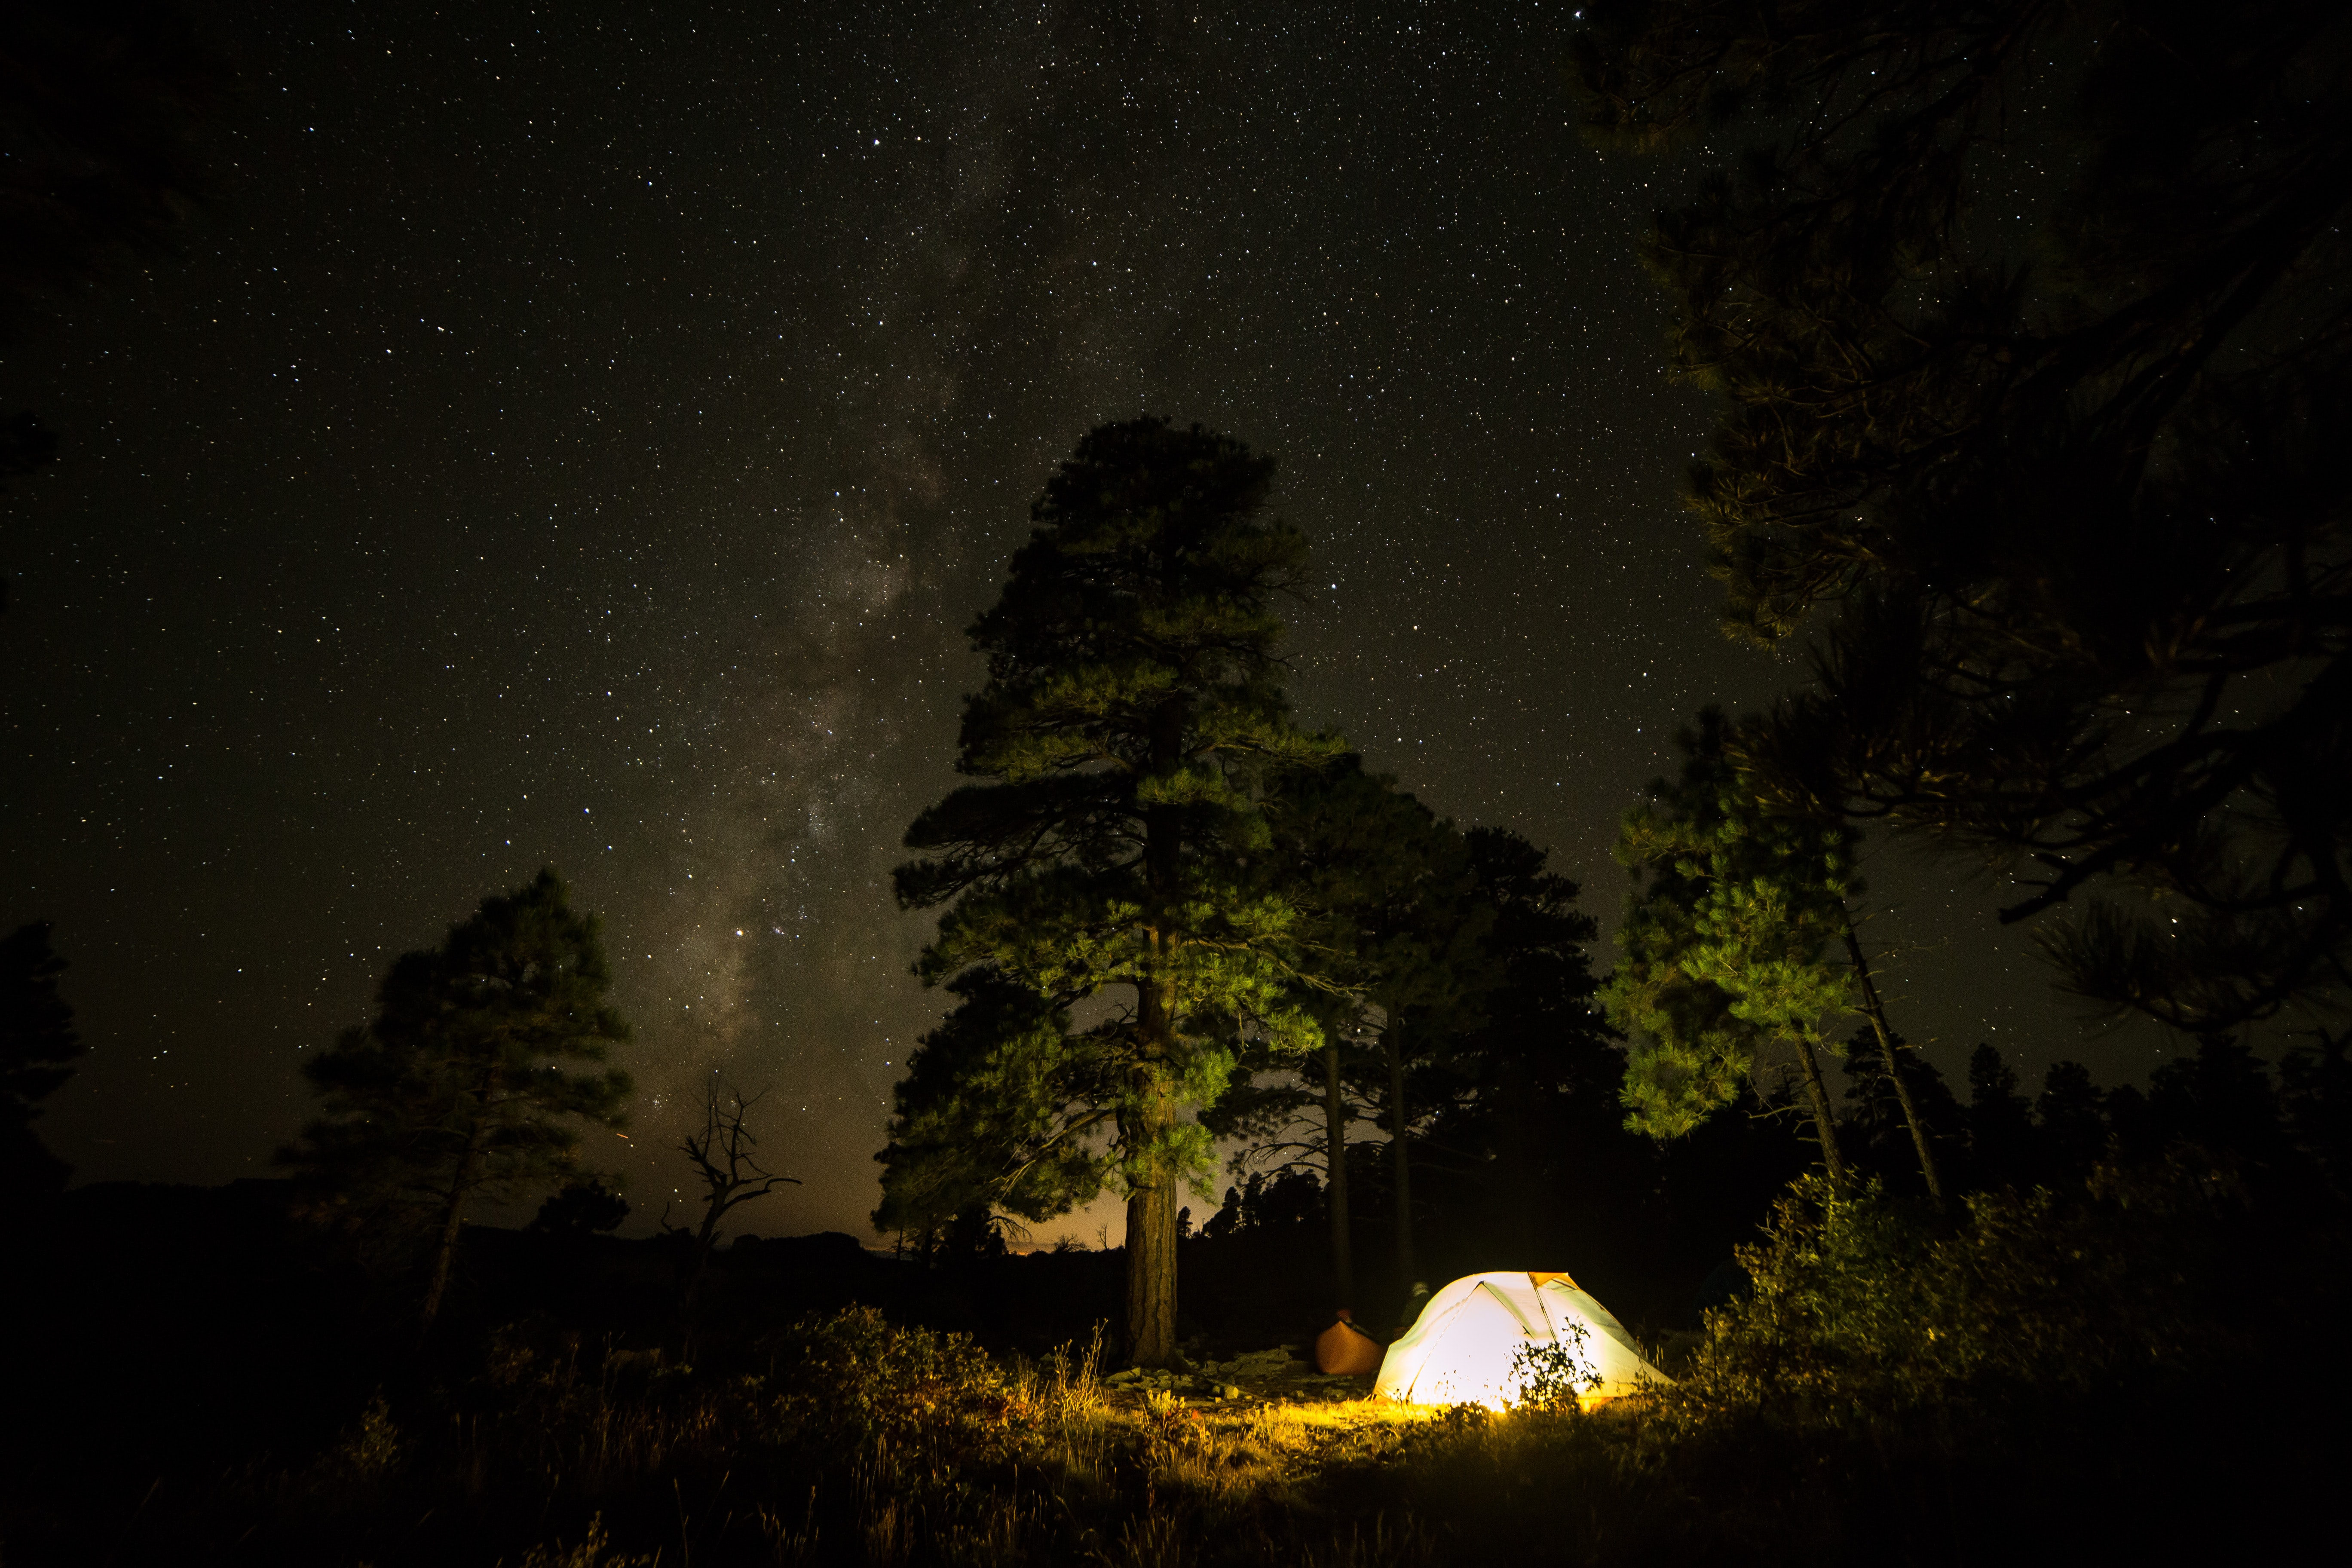 silhouette of people having camping during nighttime